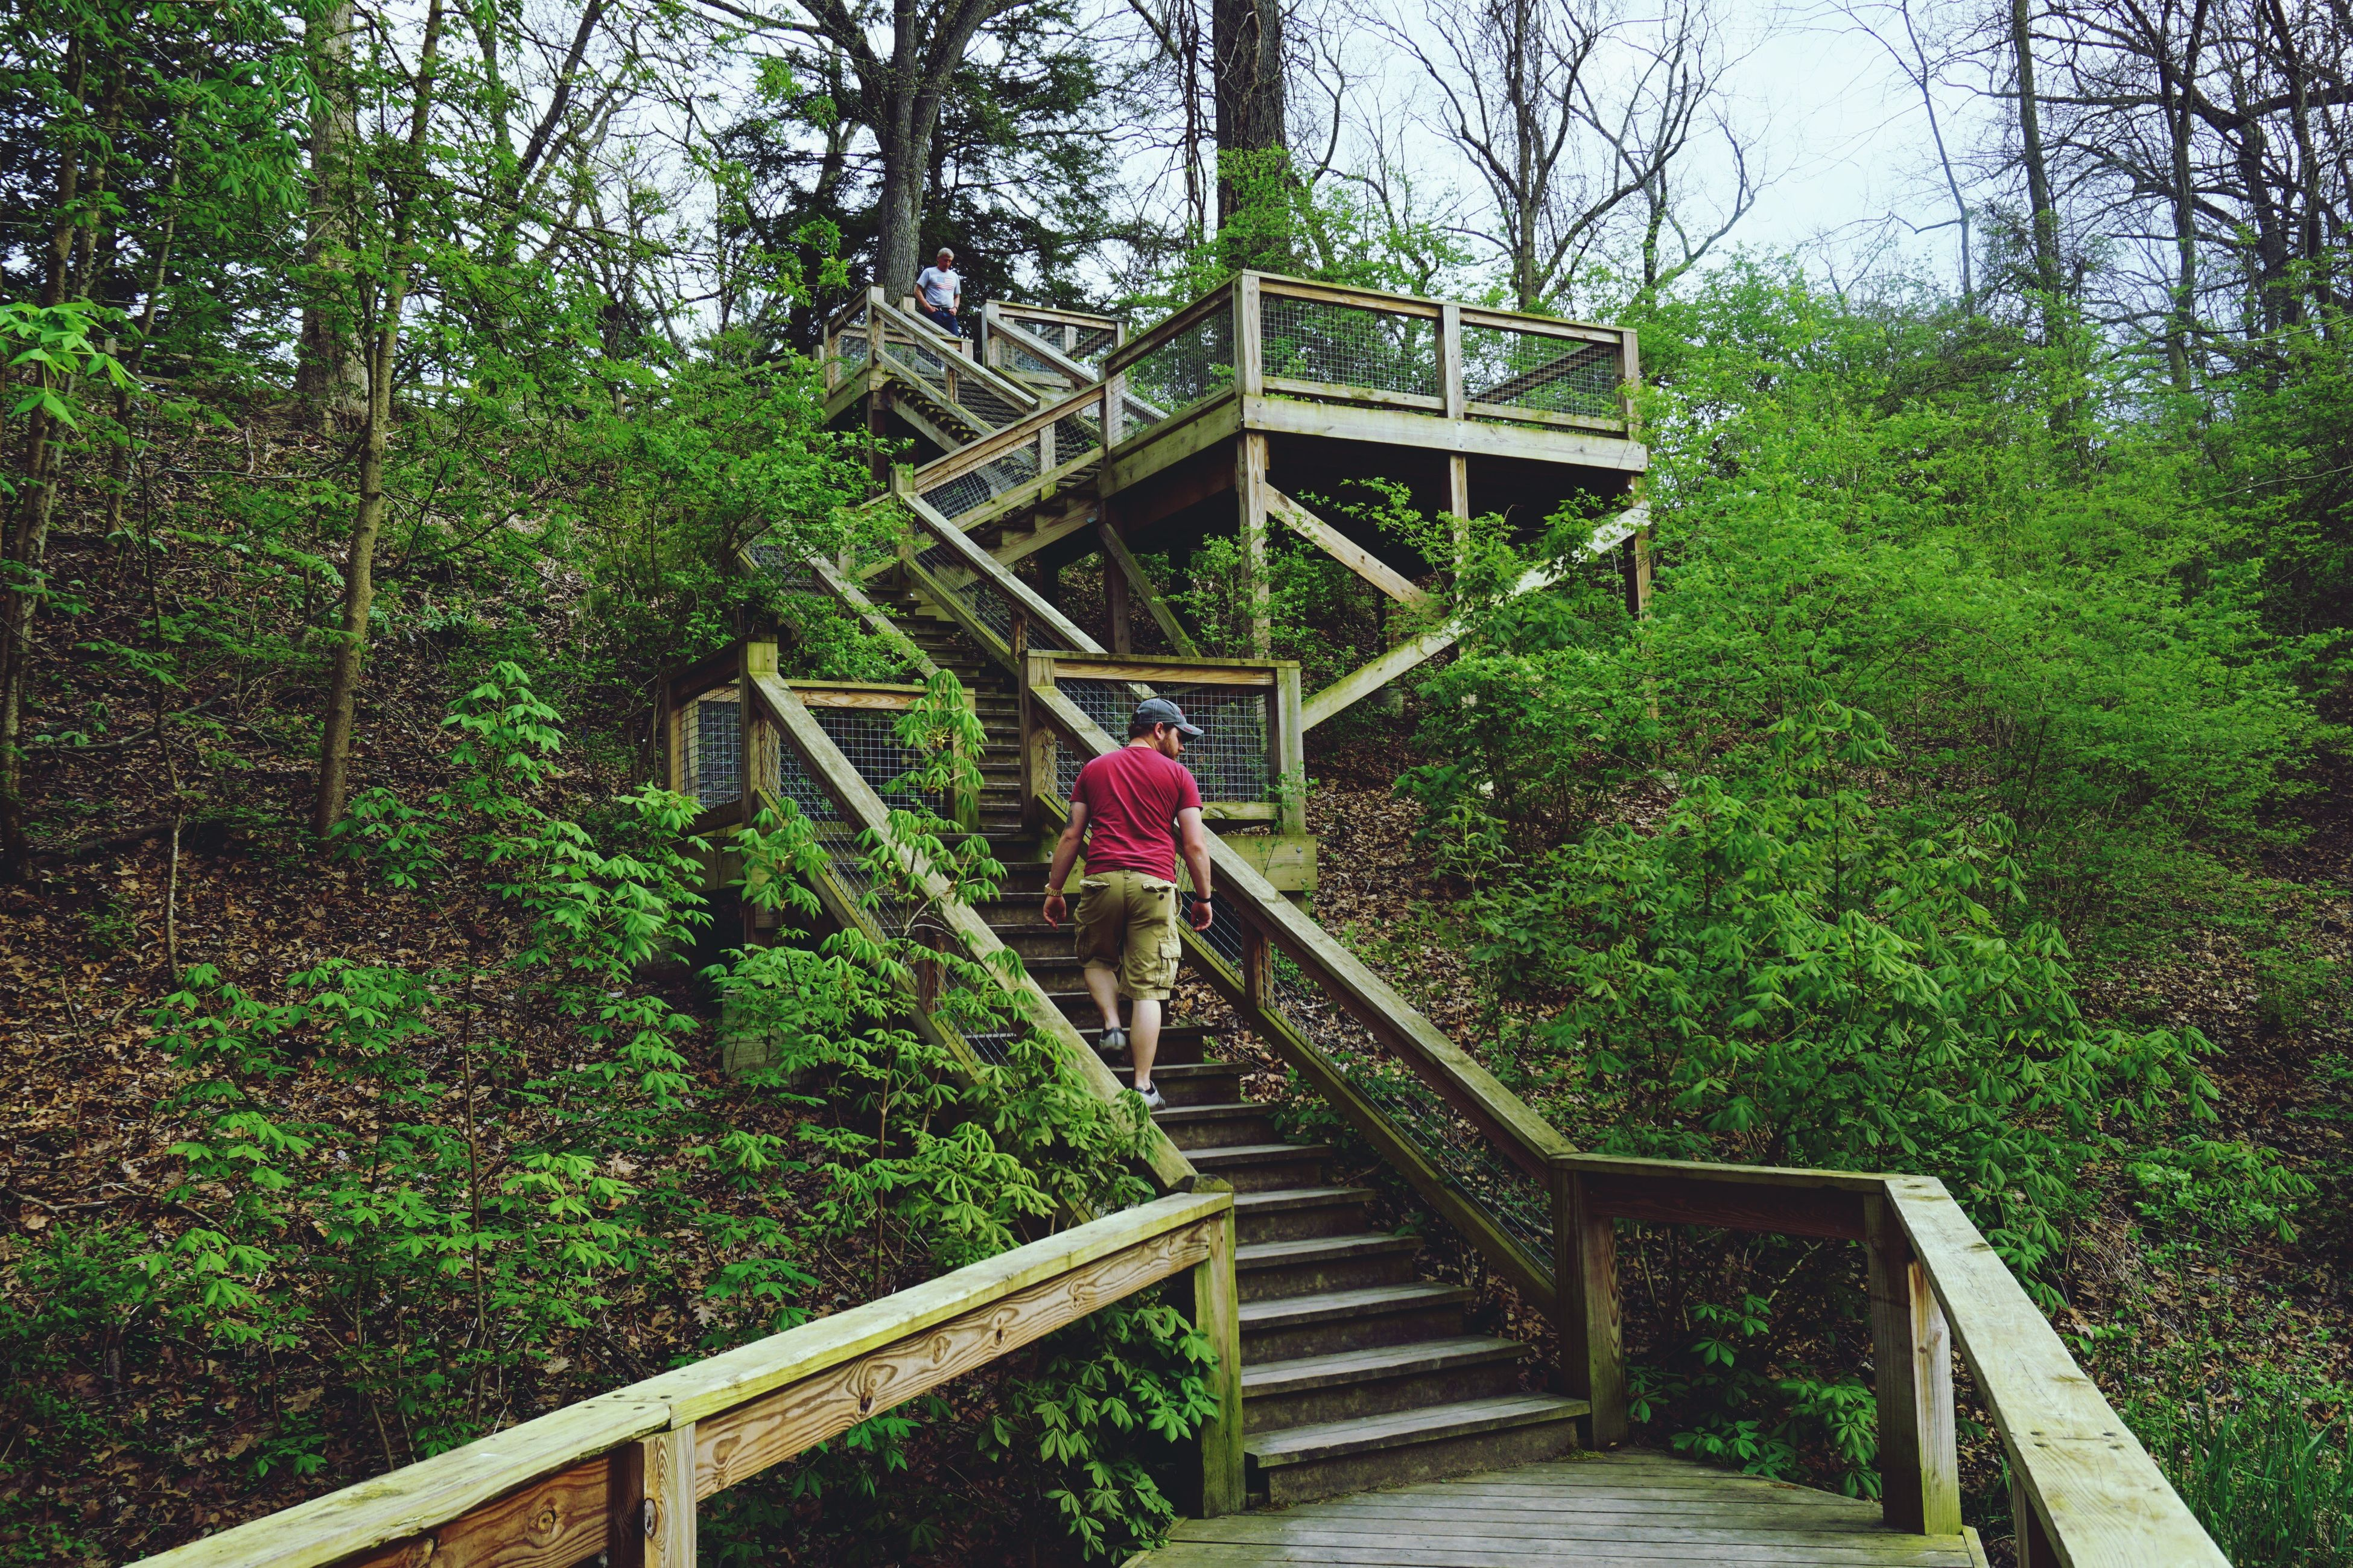 railing, tree, steps, built structure, growth, plant, staircase, steps and staircases, architecture, wood - material, flower, nature, stairs, footbridge, green color, day, the way forward, outdoors, sunlight, wooden